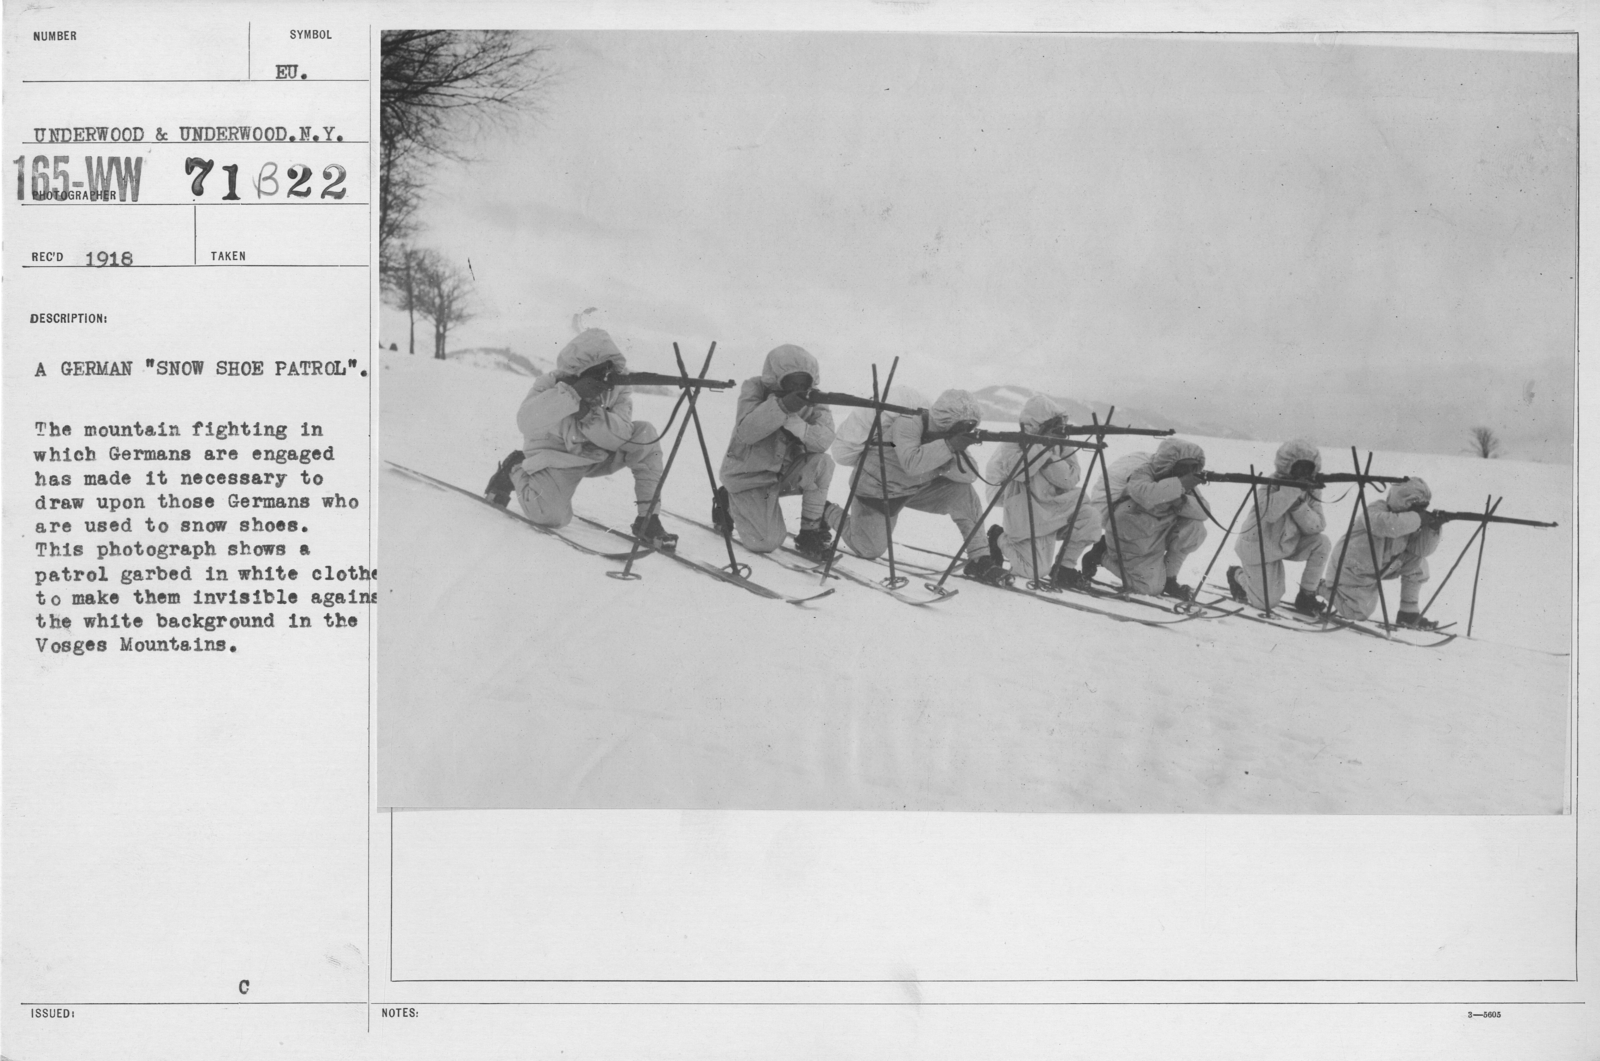 Camouflage Soldiers Training A German Snow Shoe Patrol The